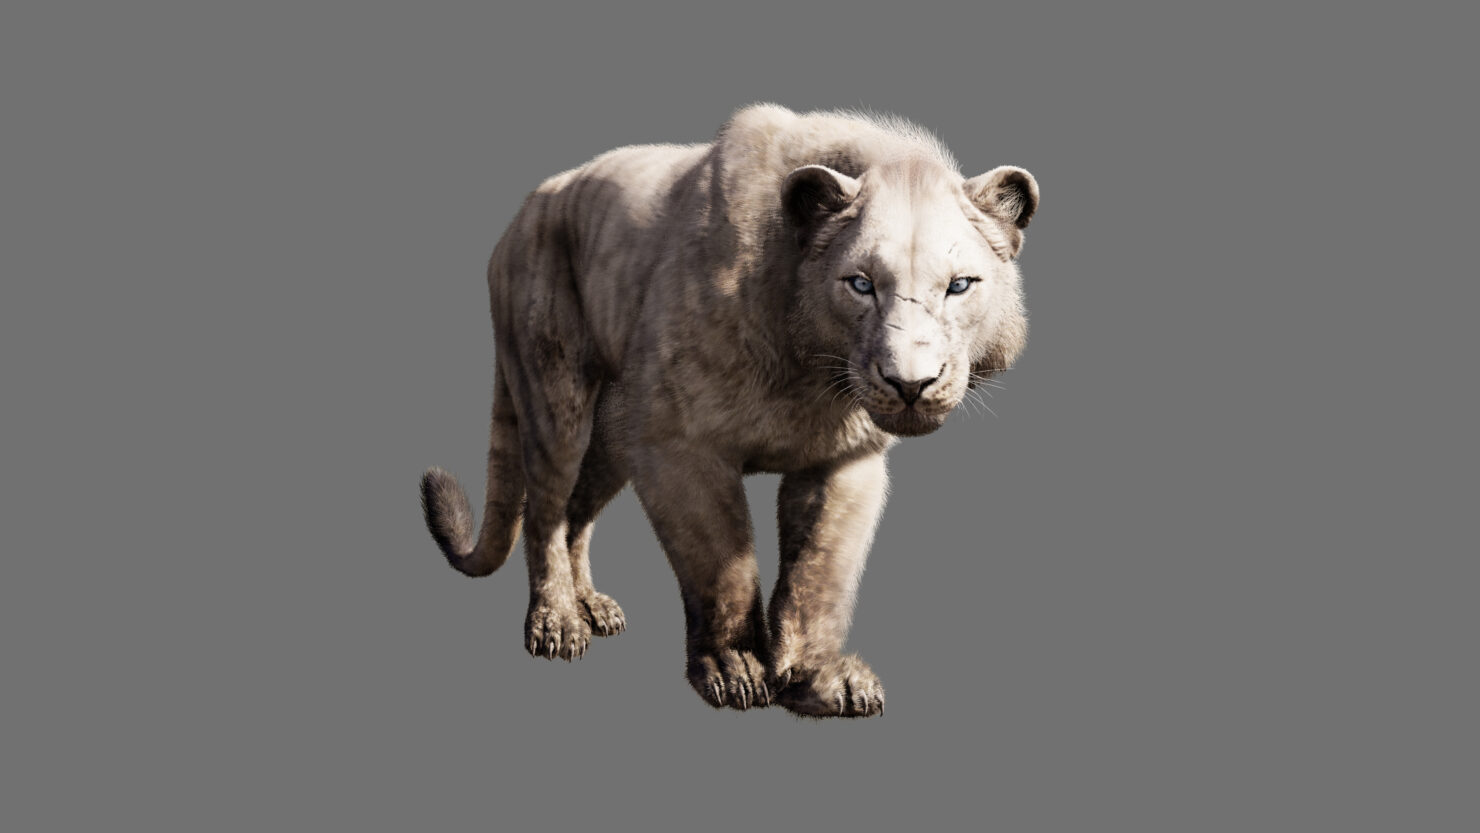 fcp_render_lion_cave_beastmaster_reveal_151204_5am_cet_1449251221